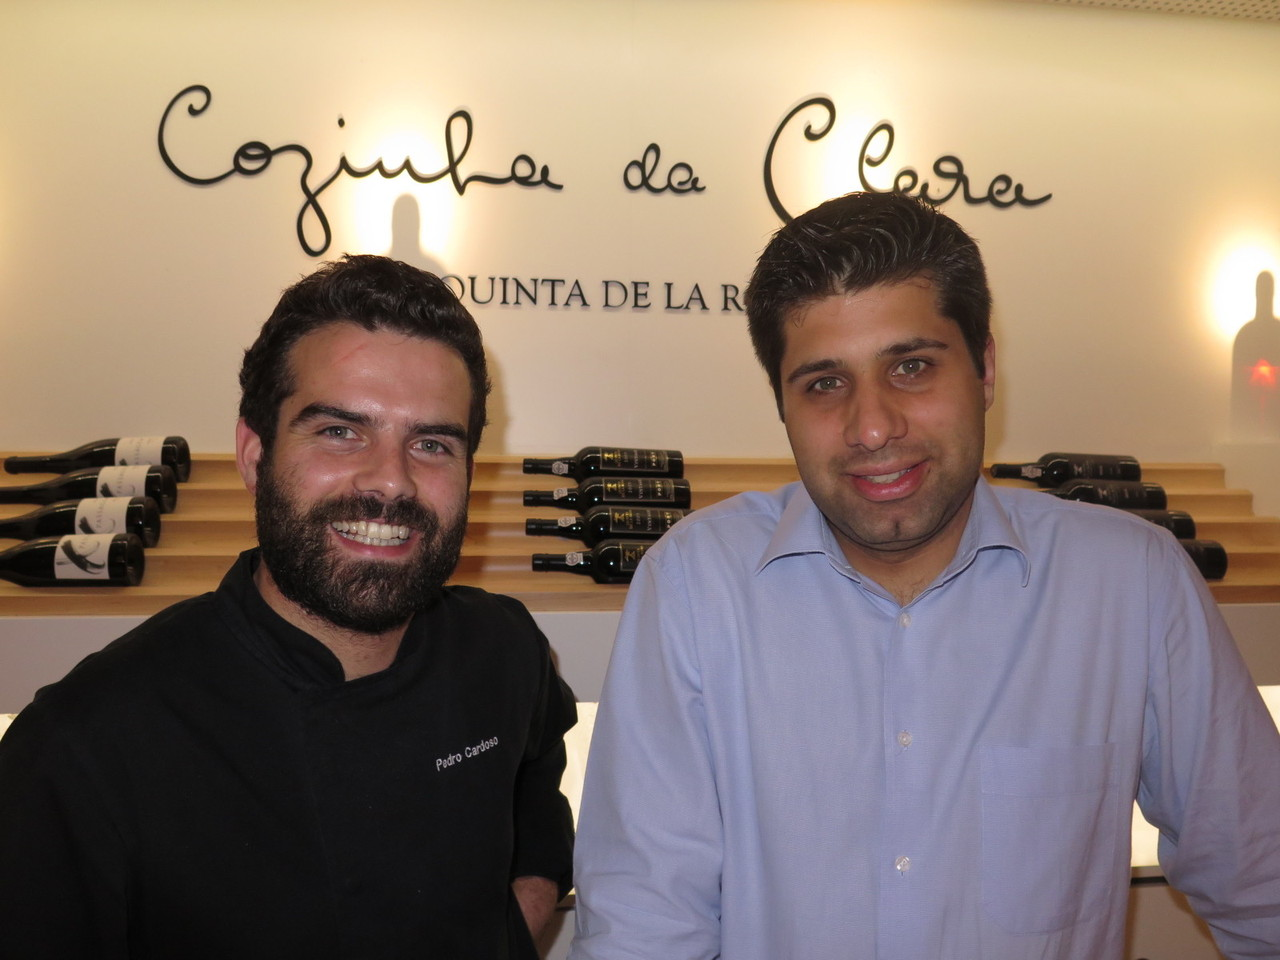 Pedro Cardoso e Pedro Esteves